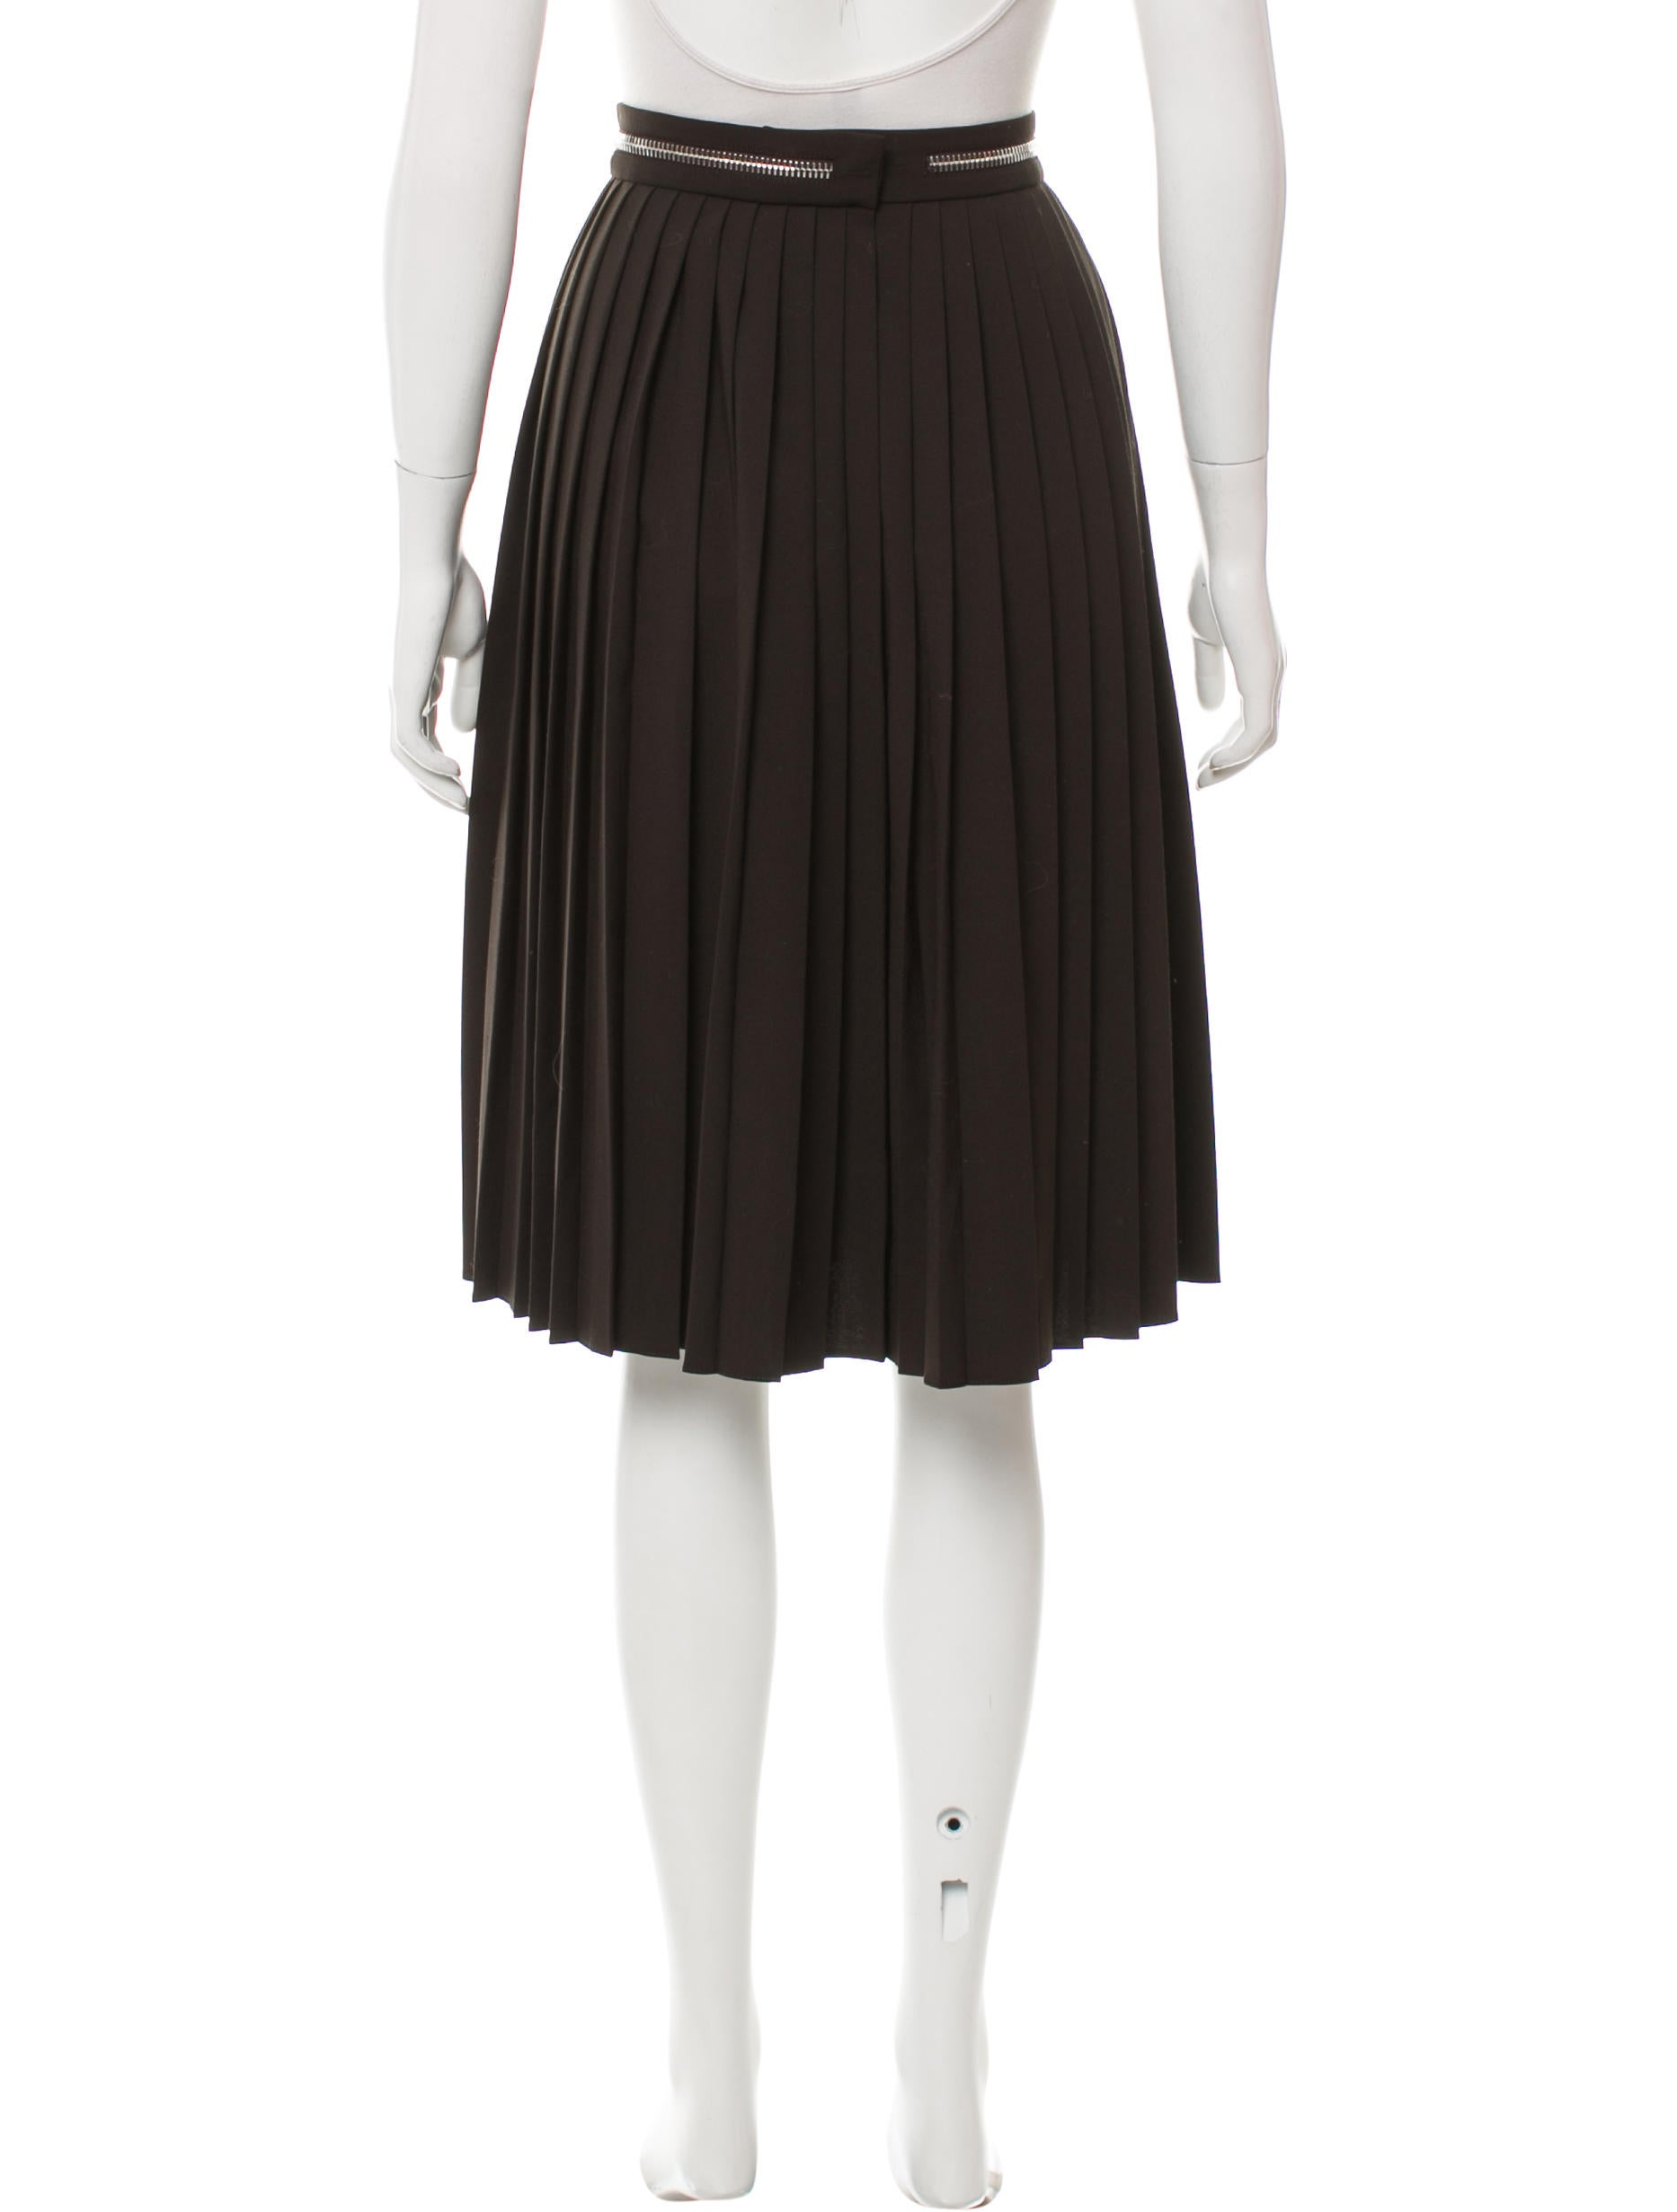 Solid Pleated Mini A line Skirt. Urban CoCo Womens Elastic Waist Pleated Short Braces Skirt. by Urban CoCo. £ - £ Prime. Eligible for FREE UK Delivery. Some sizes/colours are Prime eligible. out of 5 stars uideazone Fashion Womens Summer Midi Pleated Skirts High Waist Knee Length Skirt.